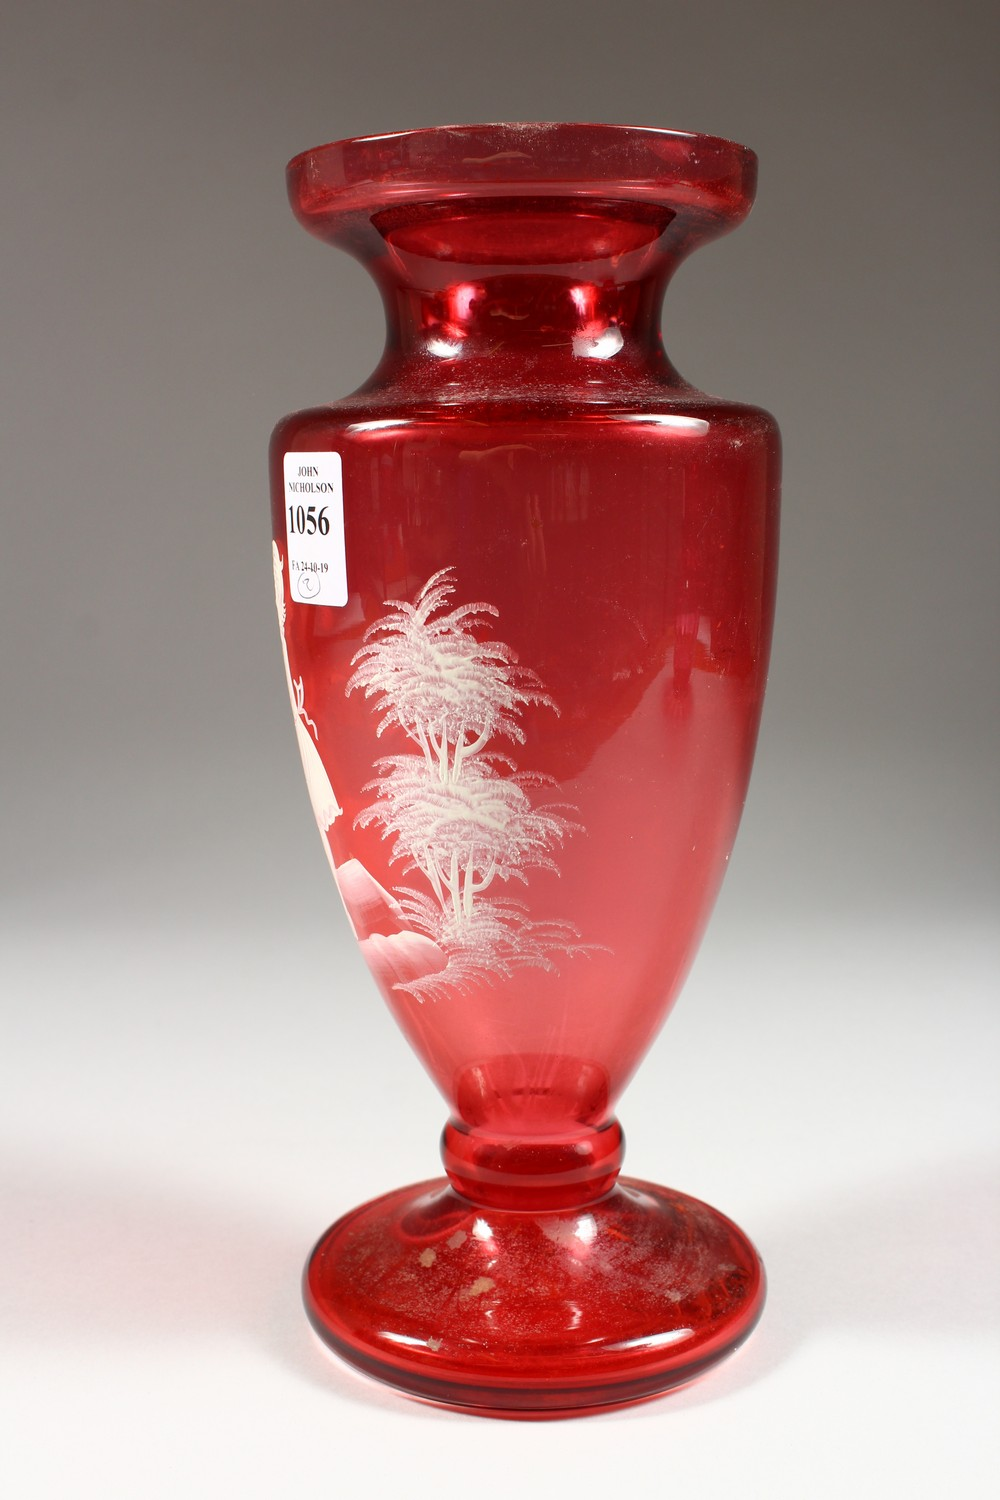 Lot 1056 - A MARY GREGORY CRANBERRY GLASS VASE, painted with a young girl in a landscape; together with a